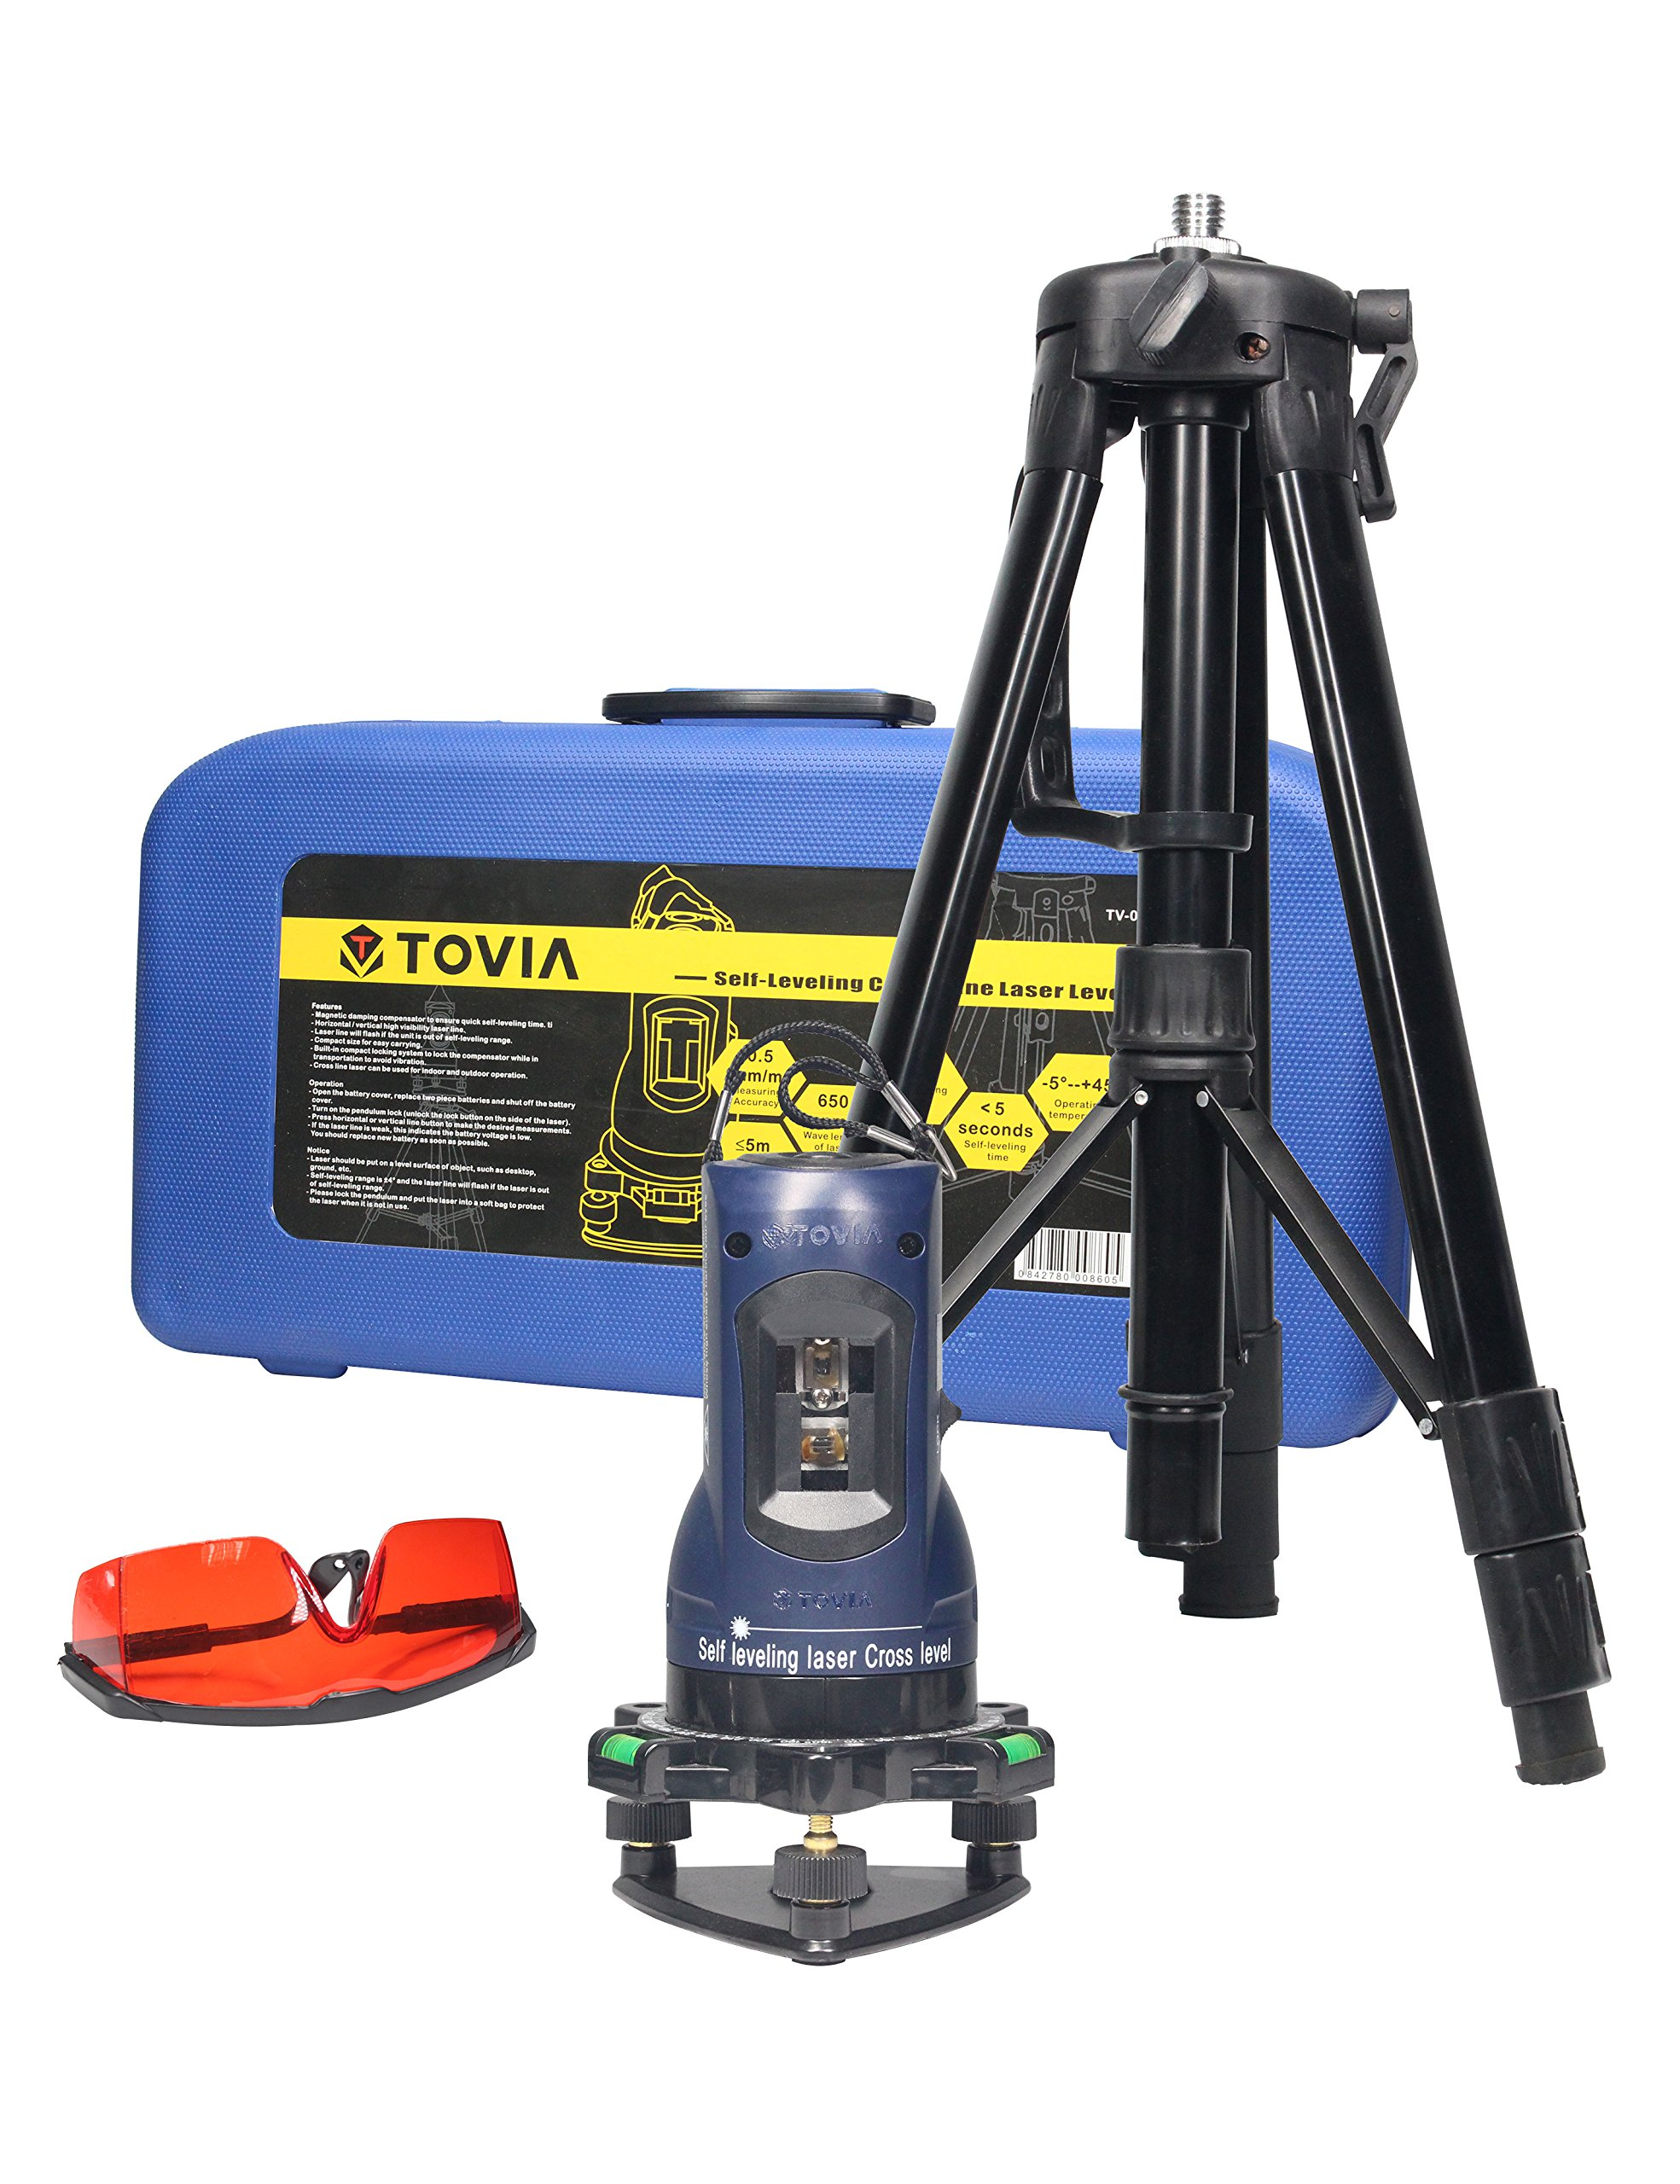 TOVIA Self-Leveling Cross Line Laser Level Kit,Tripod Tool kit with Horizontal Vertical layout(NOT INCLUDED 2AA BATTERY) by T TOVIA (Image #1)